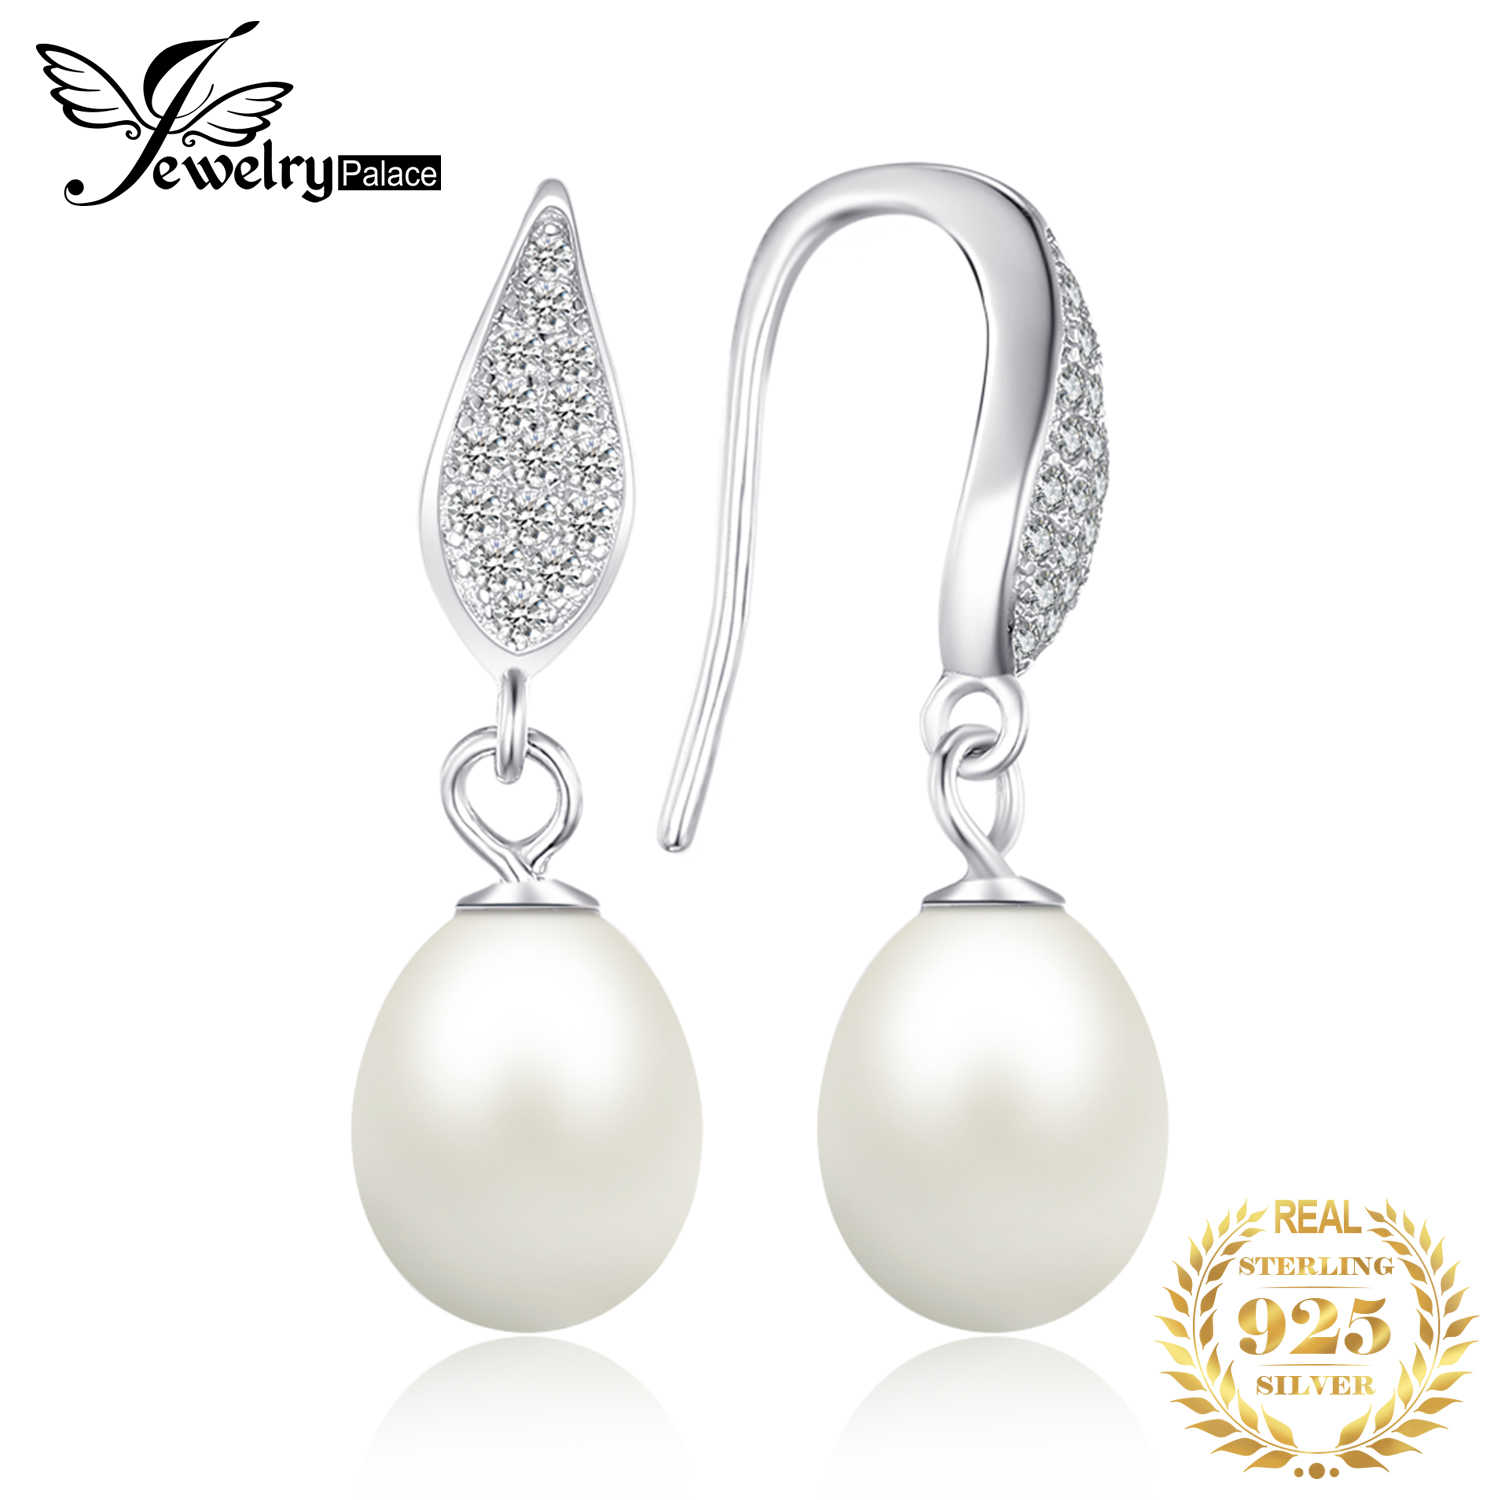 JewelryPalace Freshwater Pearl Dangle Drop Earrings 925 Sterling Silver Earrings For Women Korean Earrings Fashion Jewelry 2019